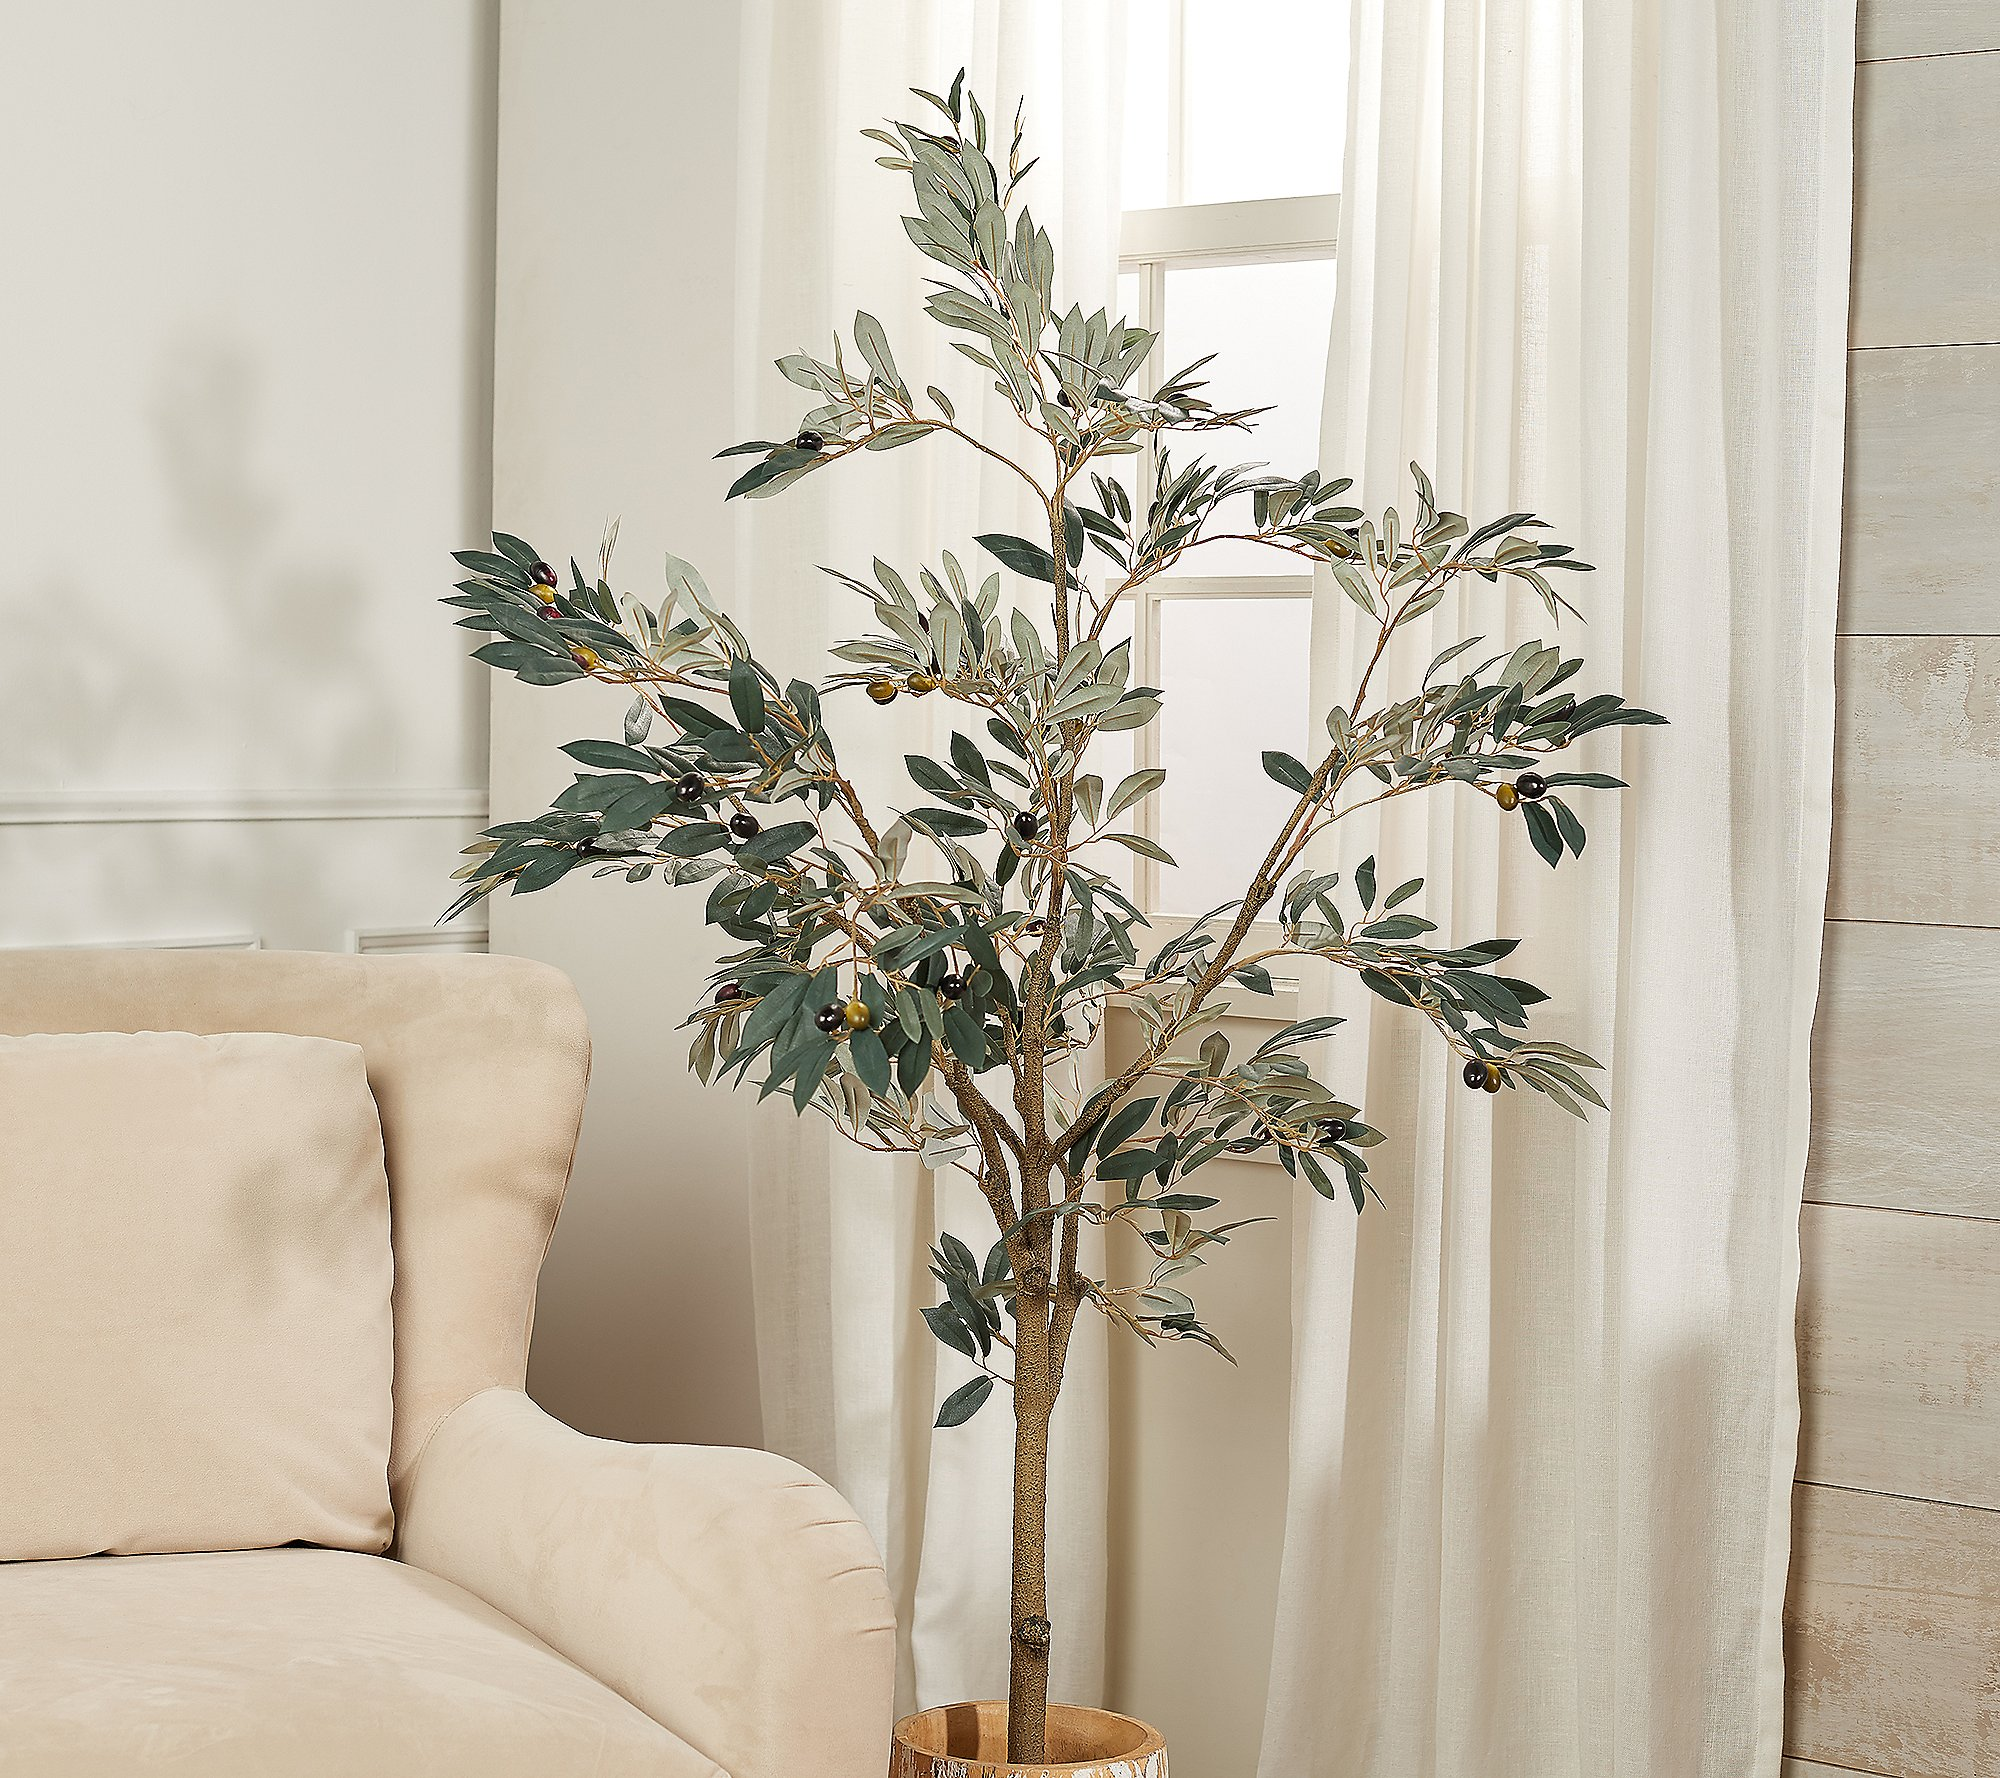 Shop 5' Faux Olive Leaf Tree in Starter Pot by Valerie from QVC on Openhaus